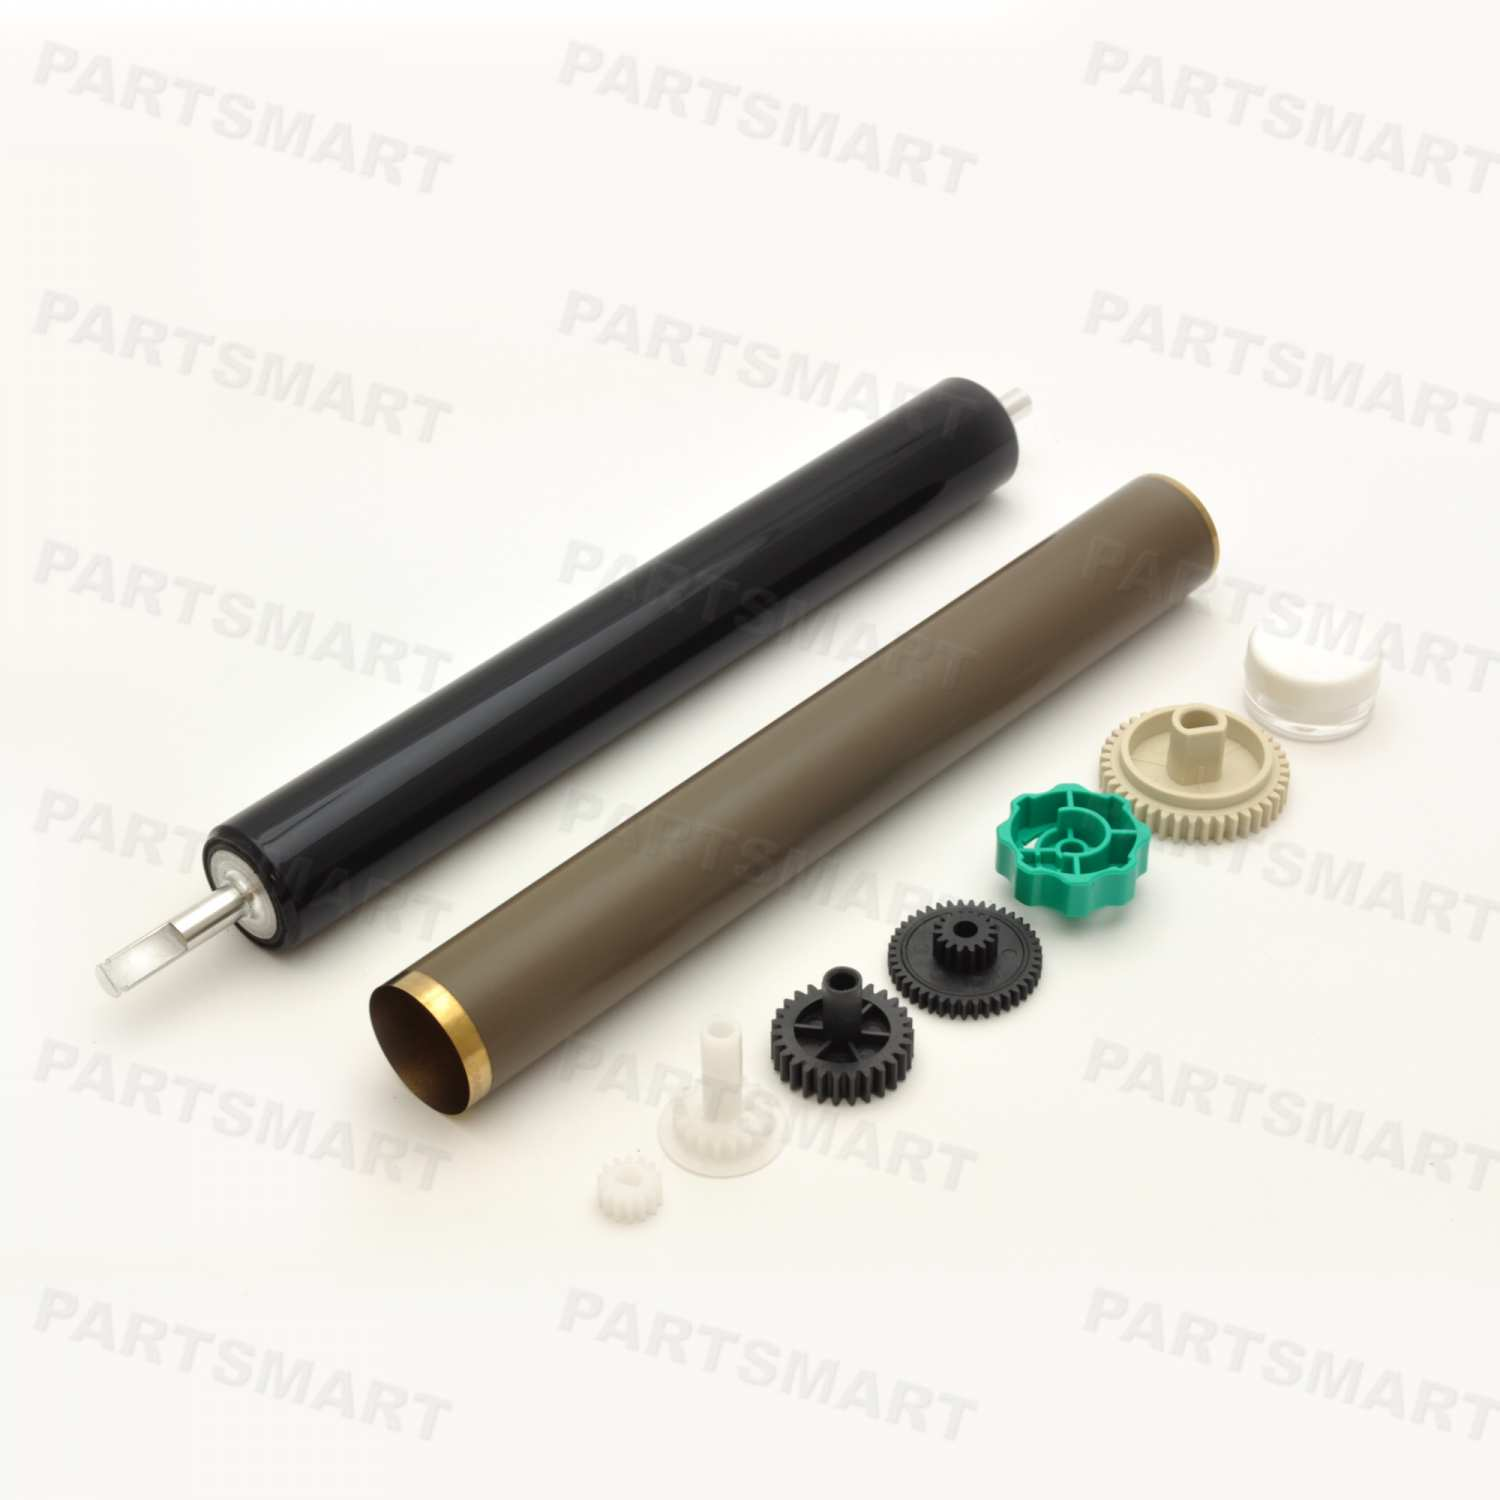 KIT-4300-FILM Fuser Service Kit for HP LaserJet 4300